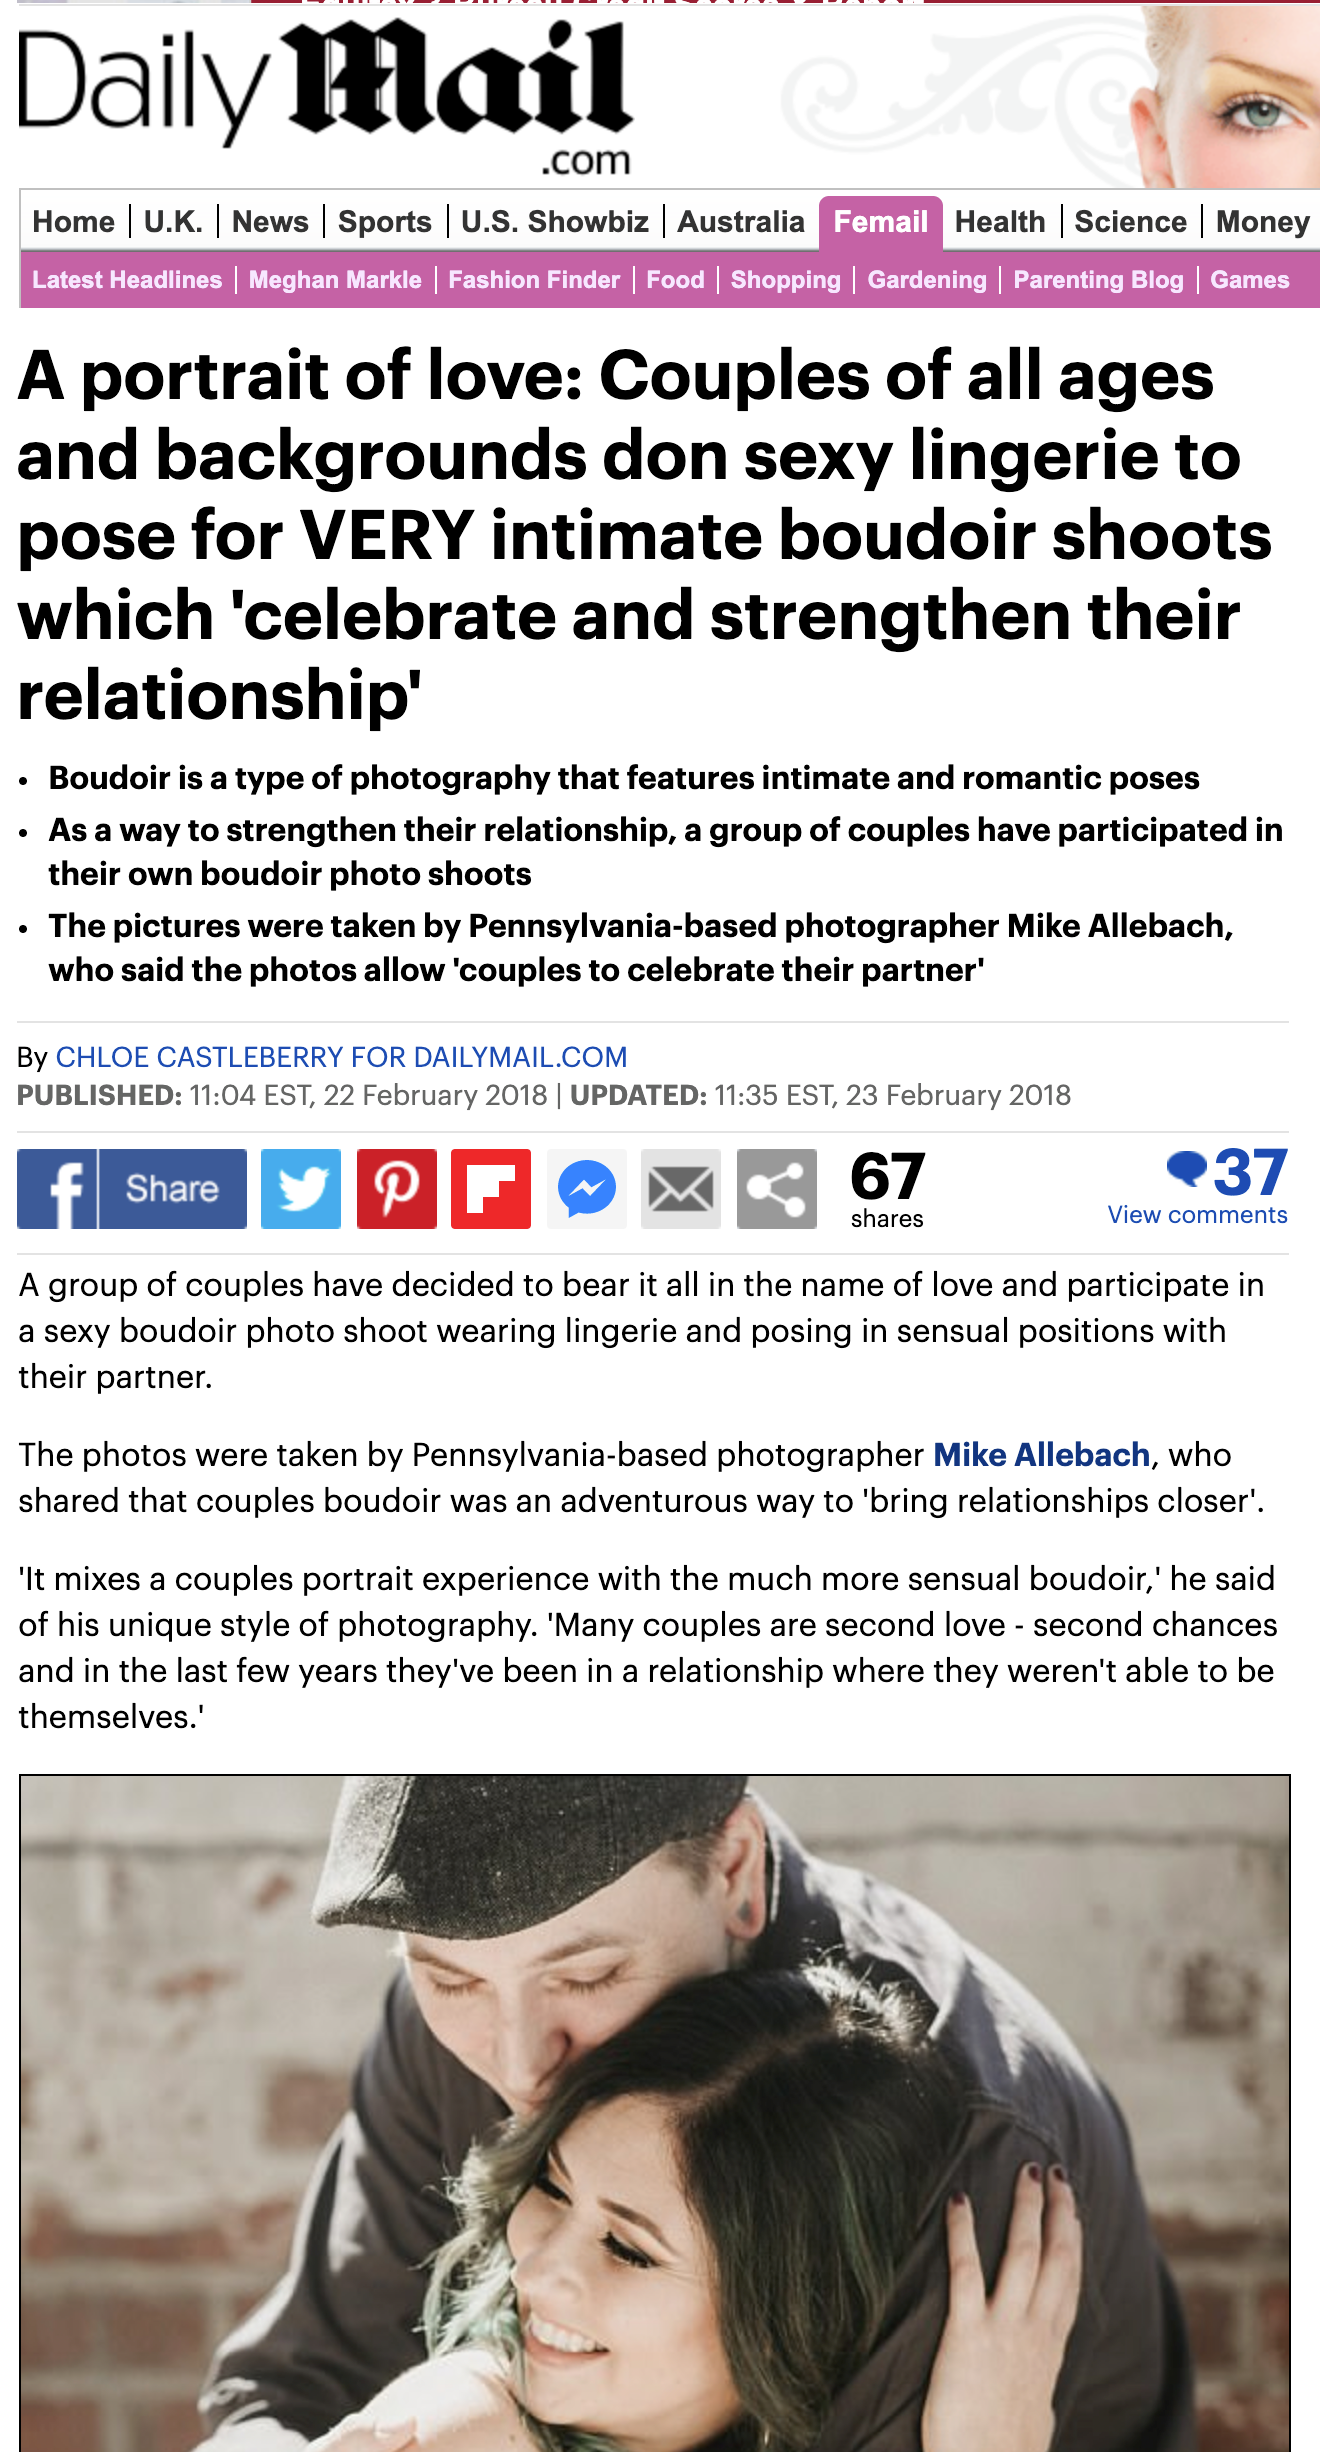 Daily Mail article - eReleases press release service Allebach Photography Case Study